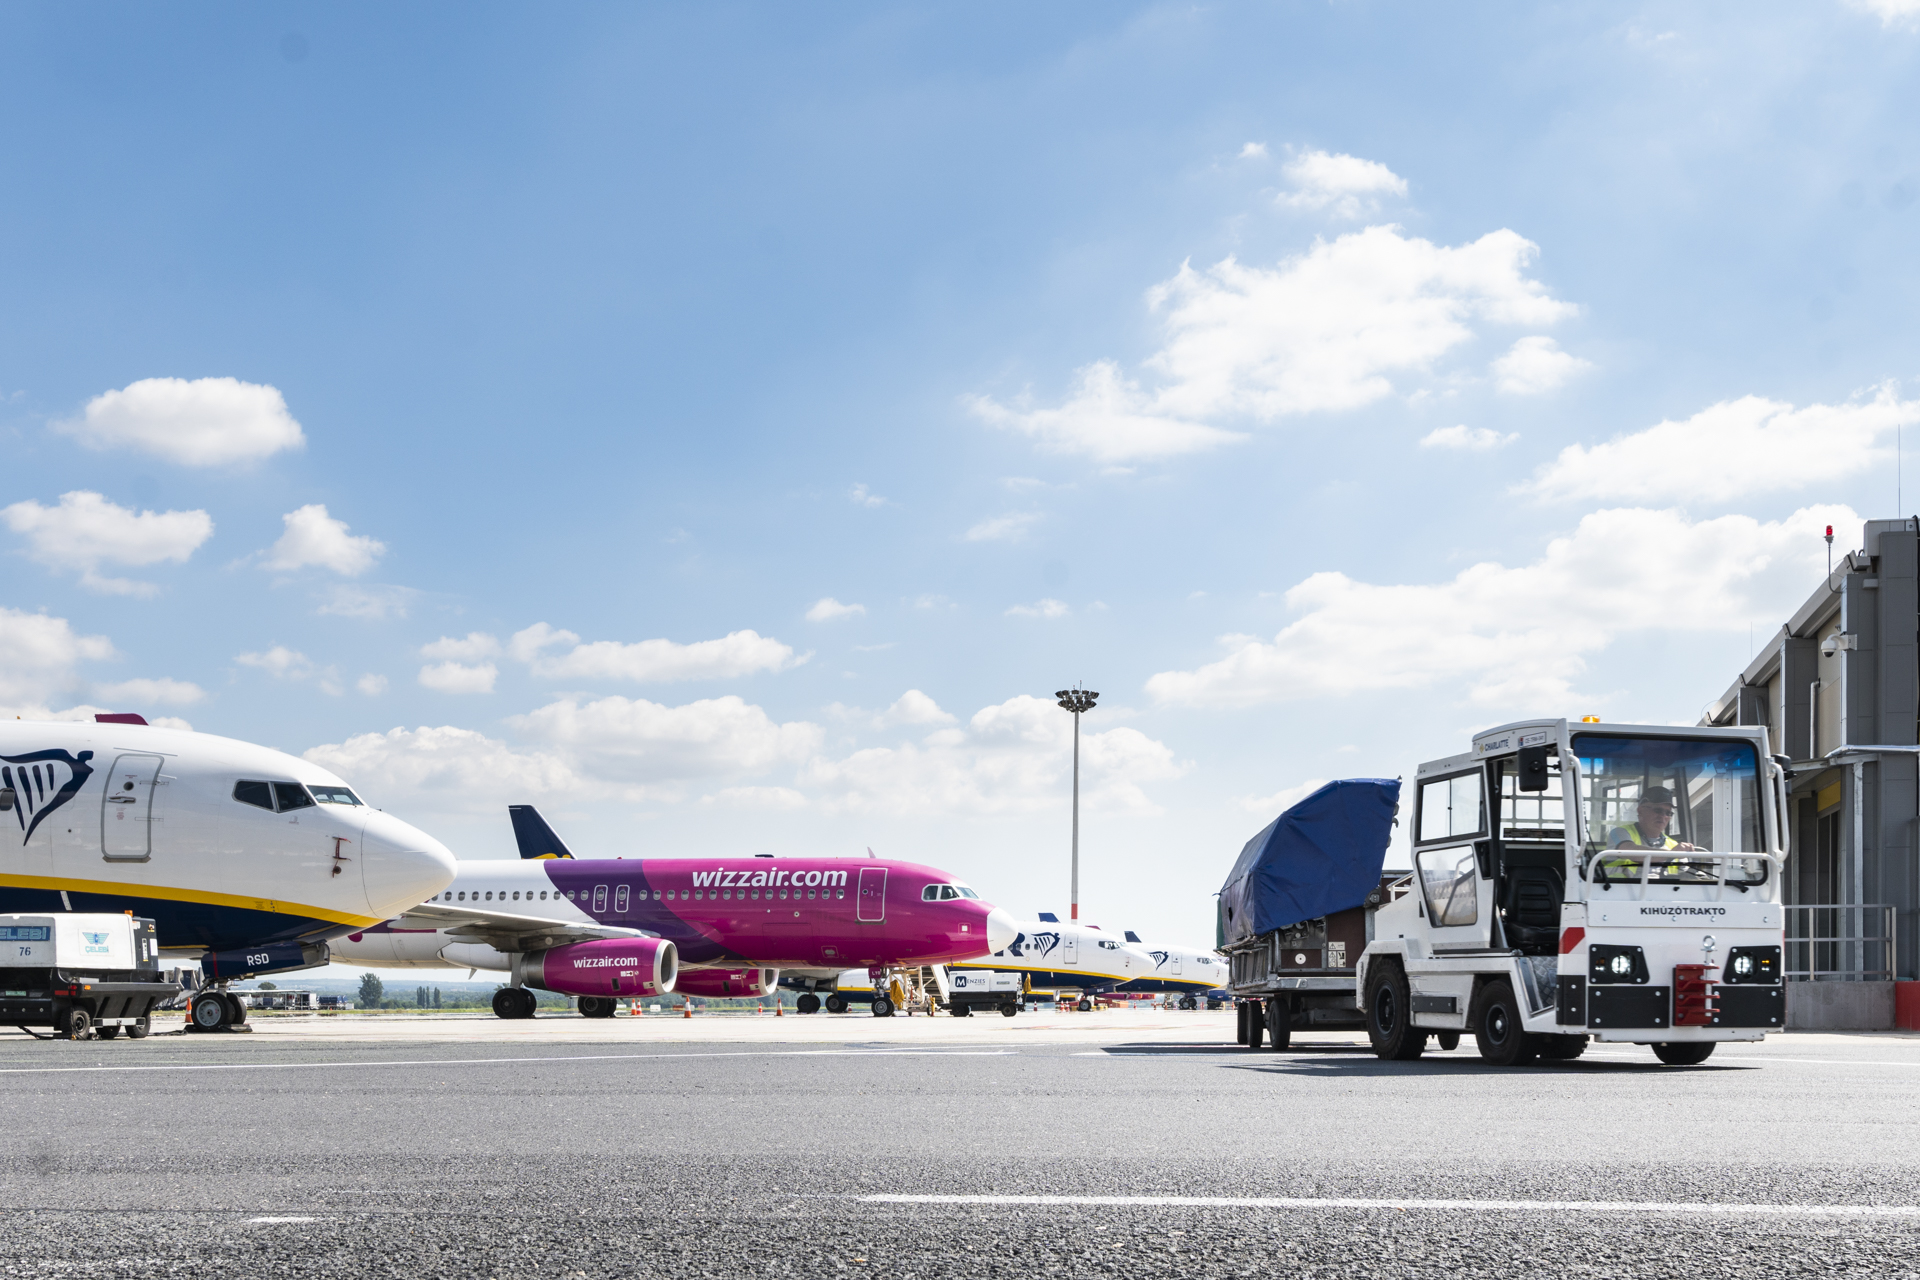 Wizz Air Makes Vaccine Mandatory for Cabin Crew